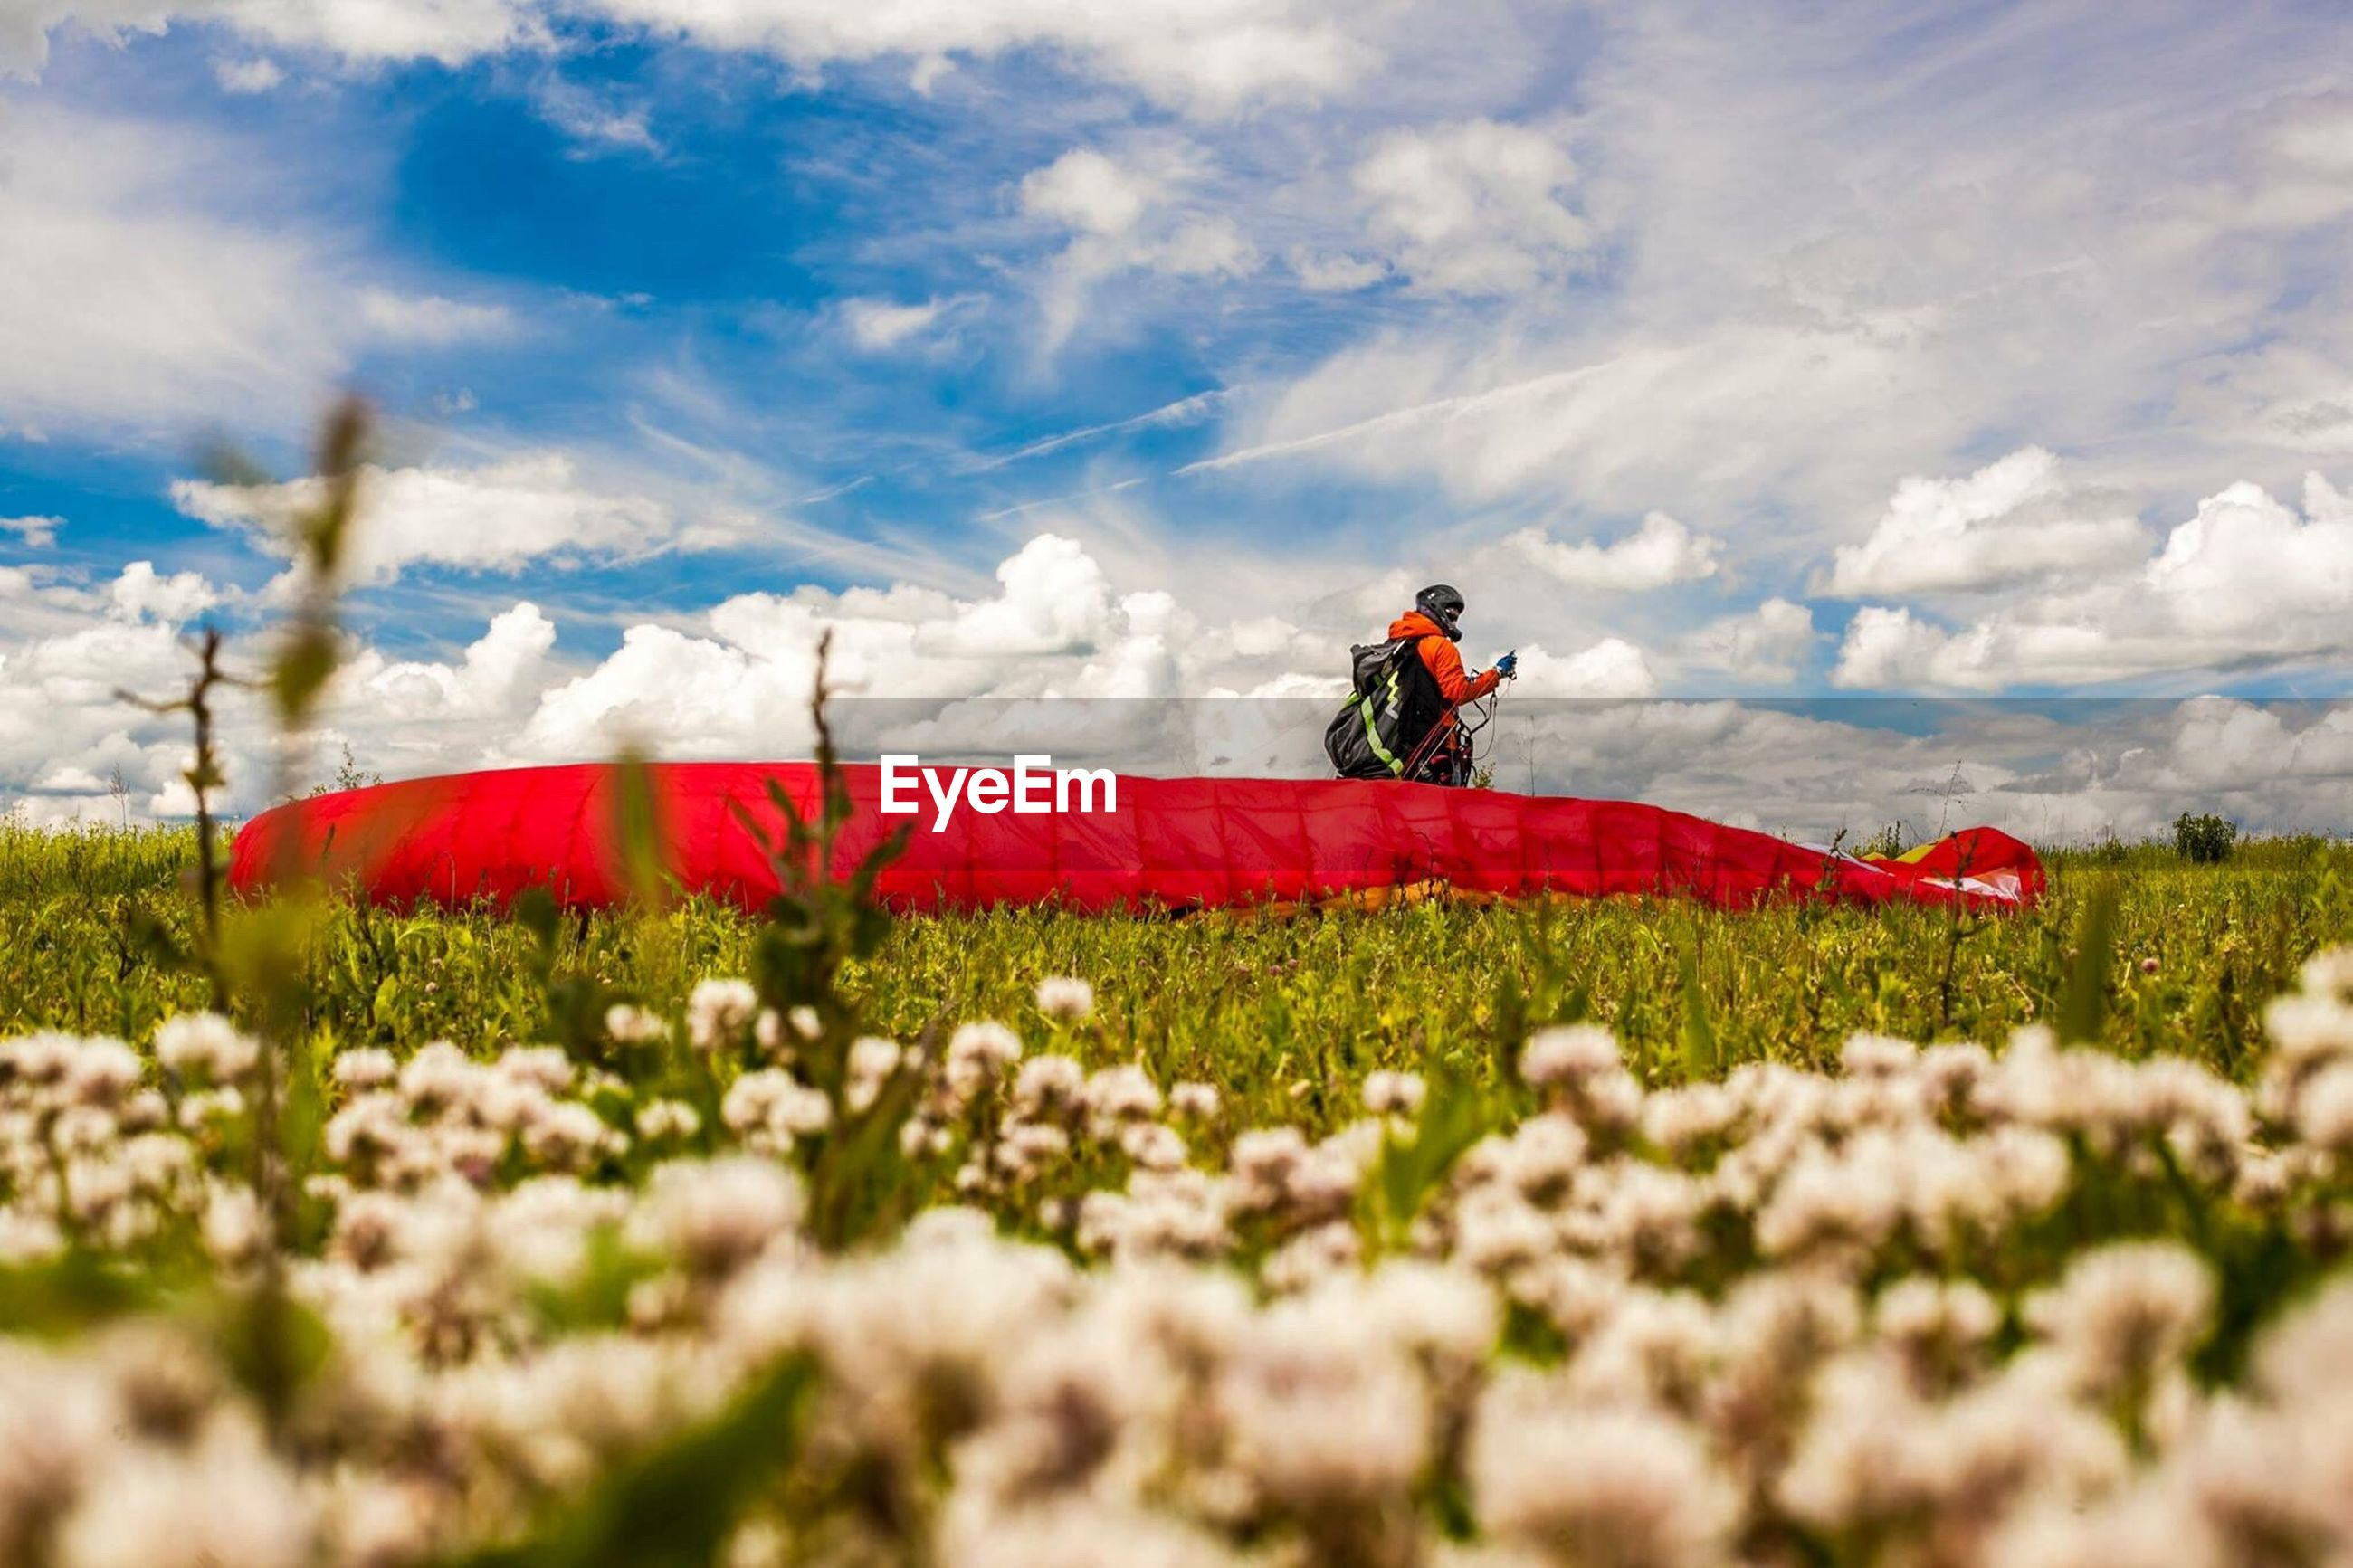 Person standing by parachute on field